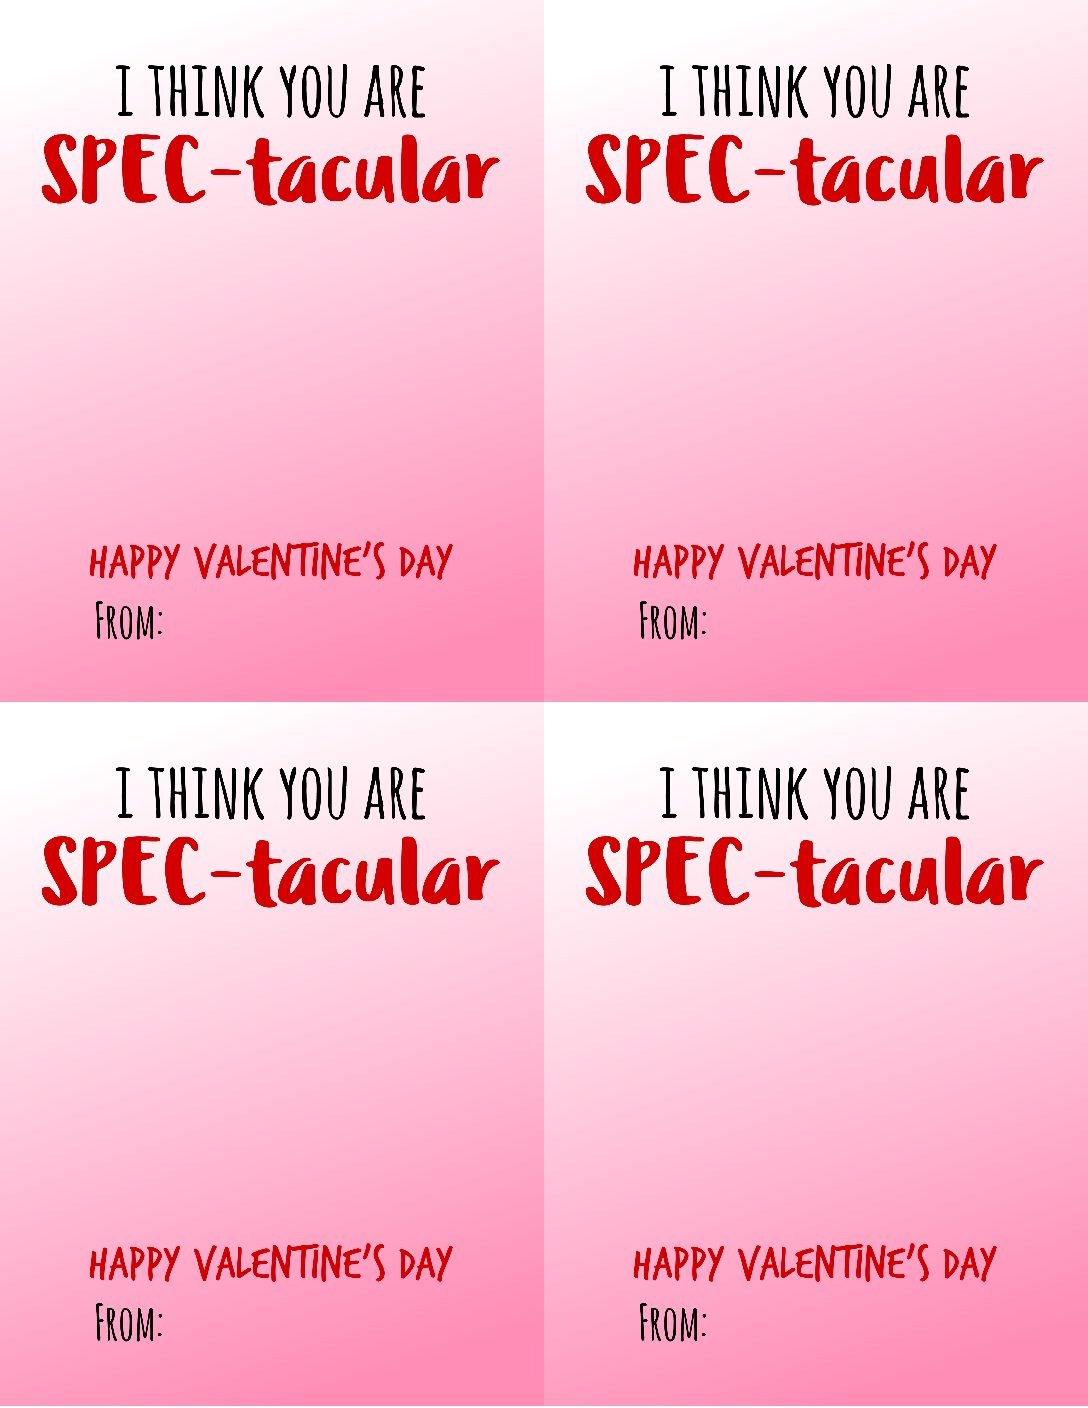 Free Spec Tacular Valentine Card Printable Smashed Peas Carrots